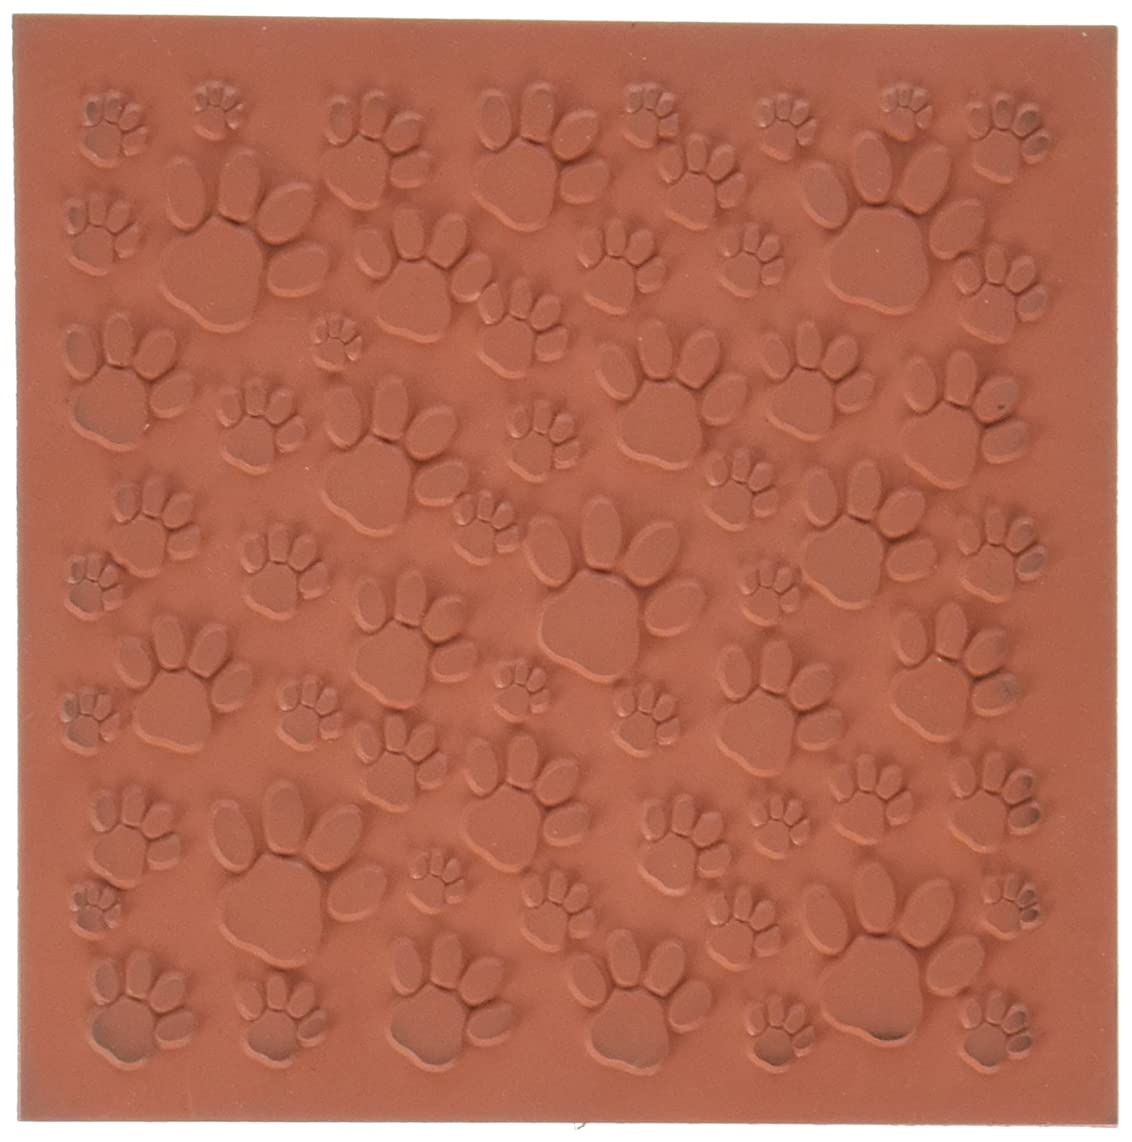 Jewelry Artist Supply Paw Prints Texture Mat - 3